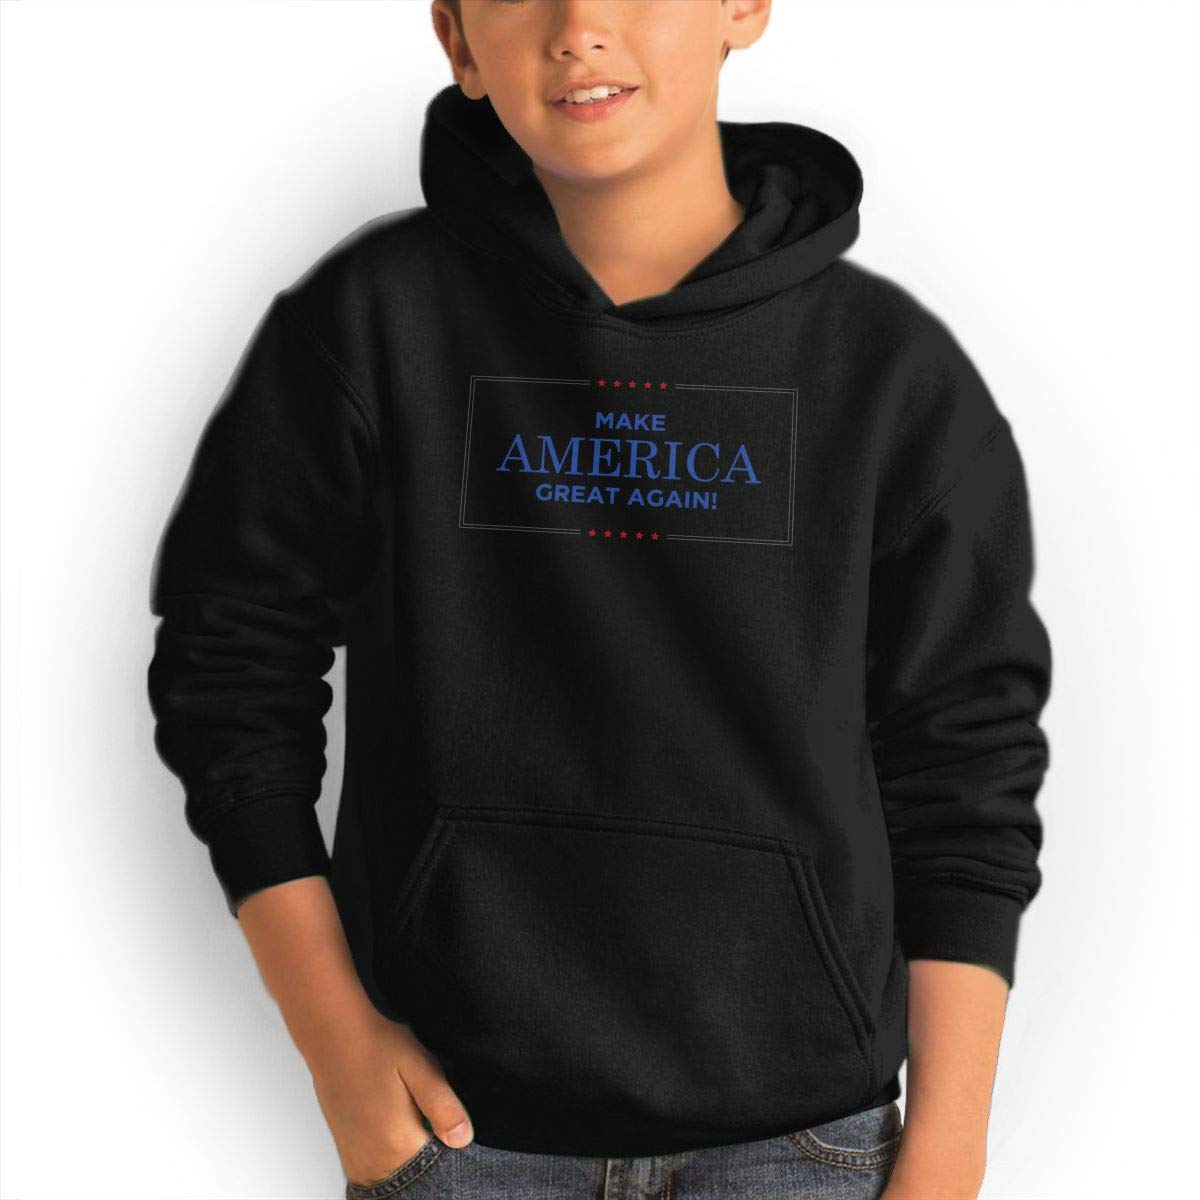 ACFUNEJRQ Youth Leisure Sports Make America Great Again Pocket Pullover Hoodies Sweatshirt